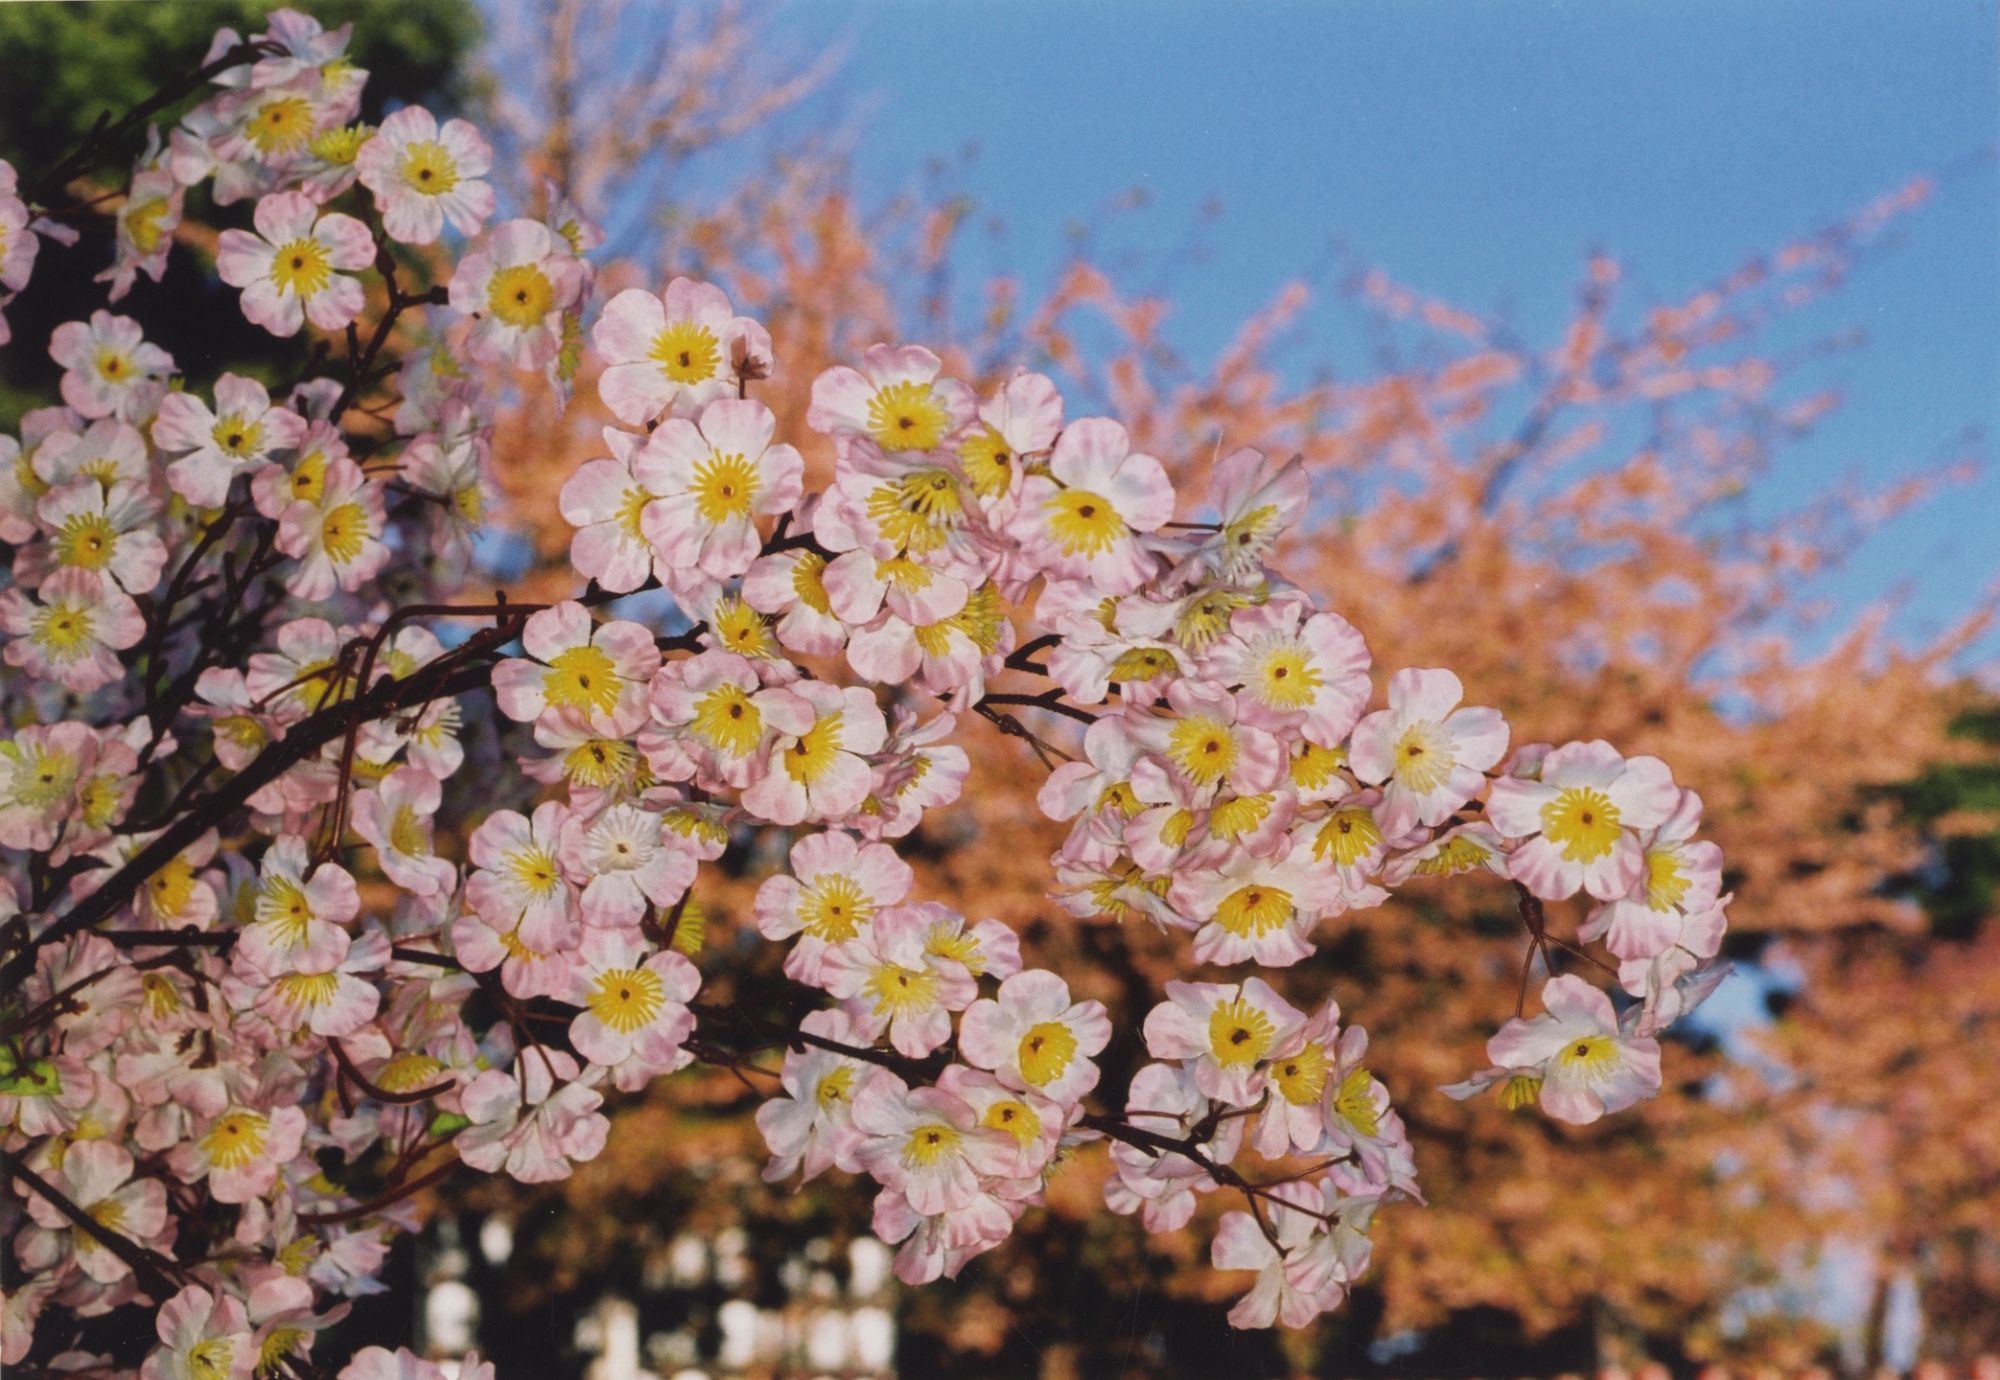 Martin Parr: Cherry Blossom Time in Tokyo, 2000, Limited Edition (with 20 Original Color Photographs)